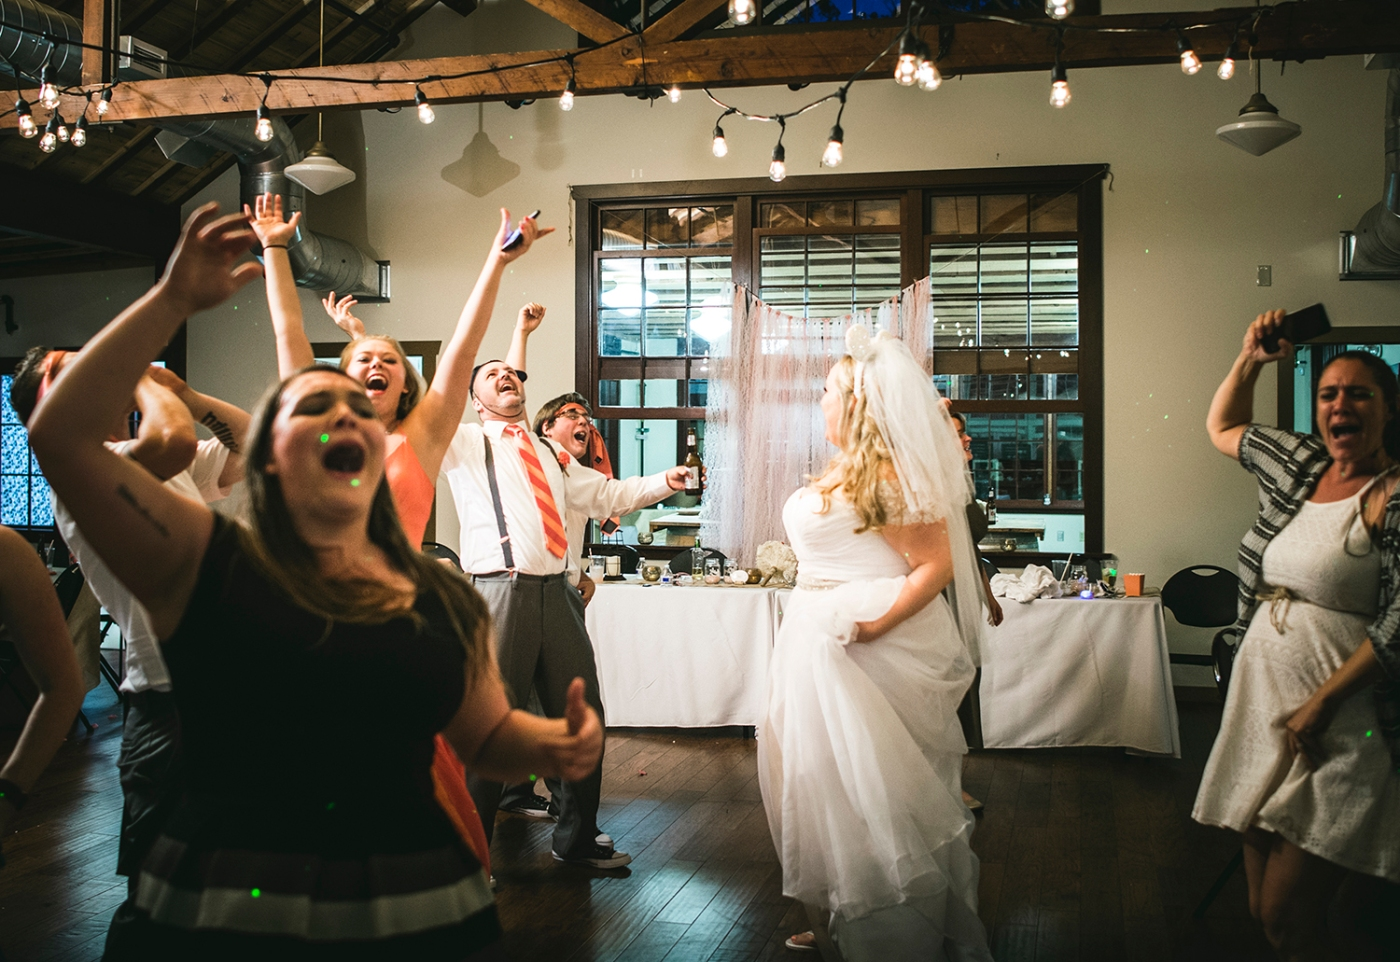 Jane_S_Seattle_photography_Kadie_and_Steve_2016_Des_Moines_Marina_Wedding_DSC_2734